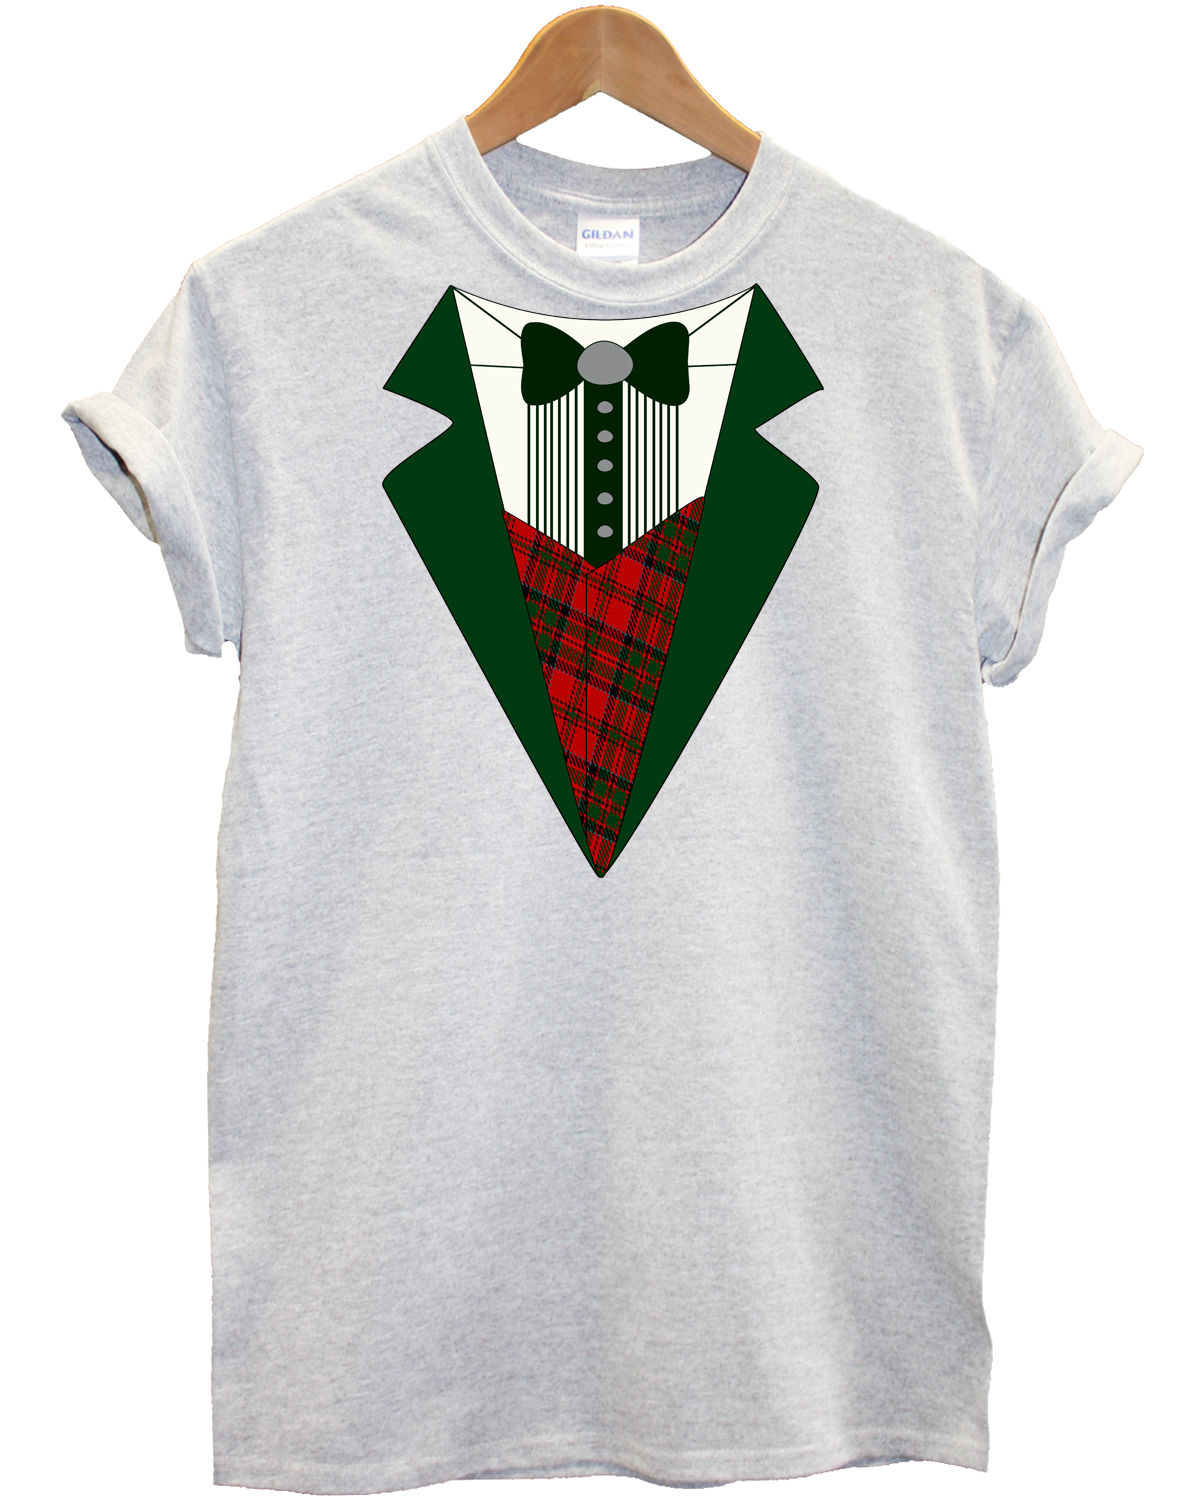 71c763a9a3 Christmas Green Tuxedo T Shirt Father Christmas Santa Gift Present Top  Dress Up, Main Colour Grey